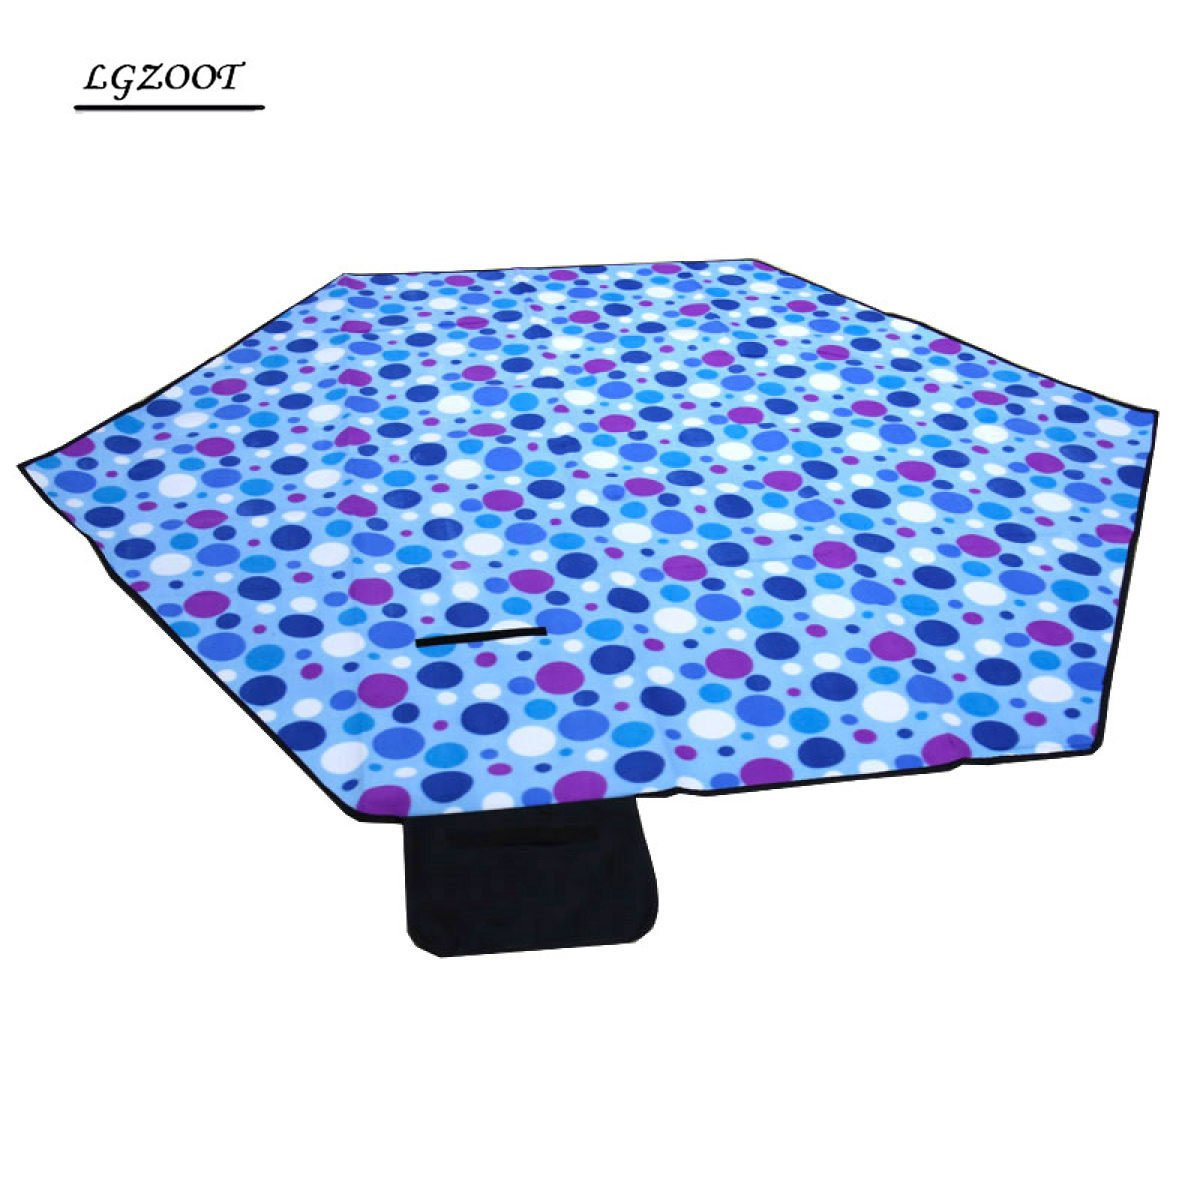 Outdoor Camping Hexagonal Moistureproof Wildleder Picknickdecke Strandtuch 240 * 240cm,Blue